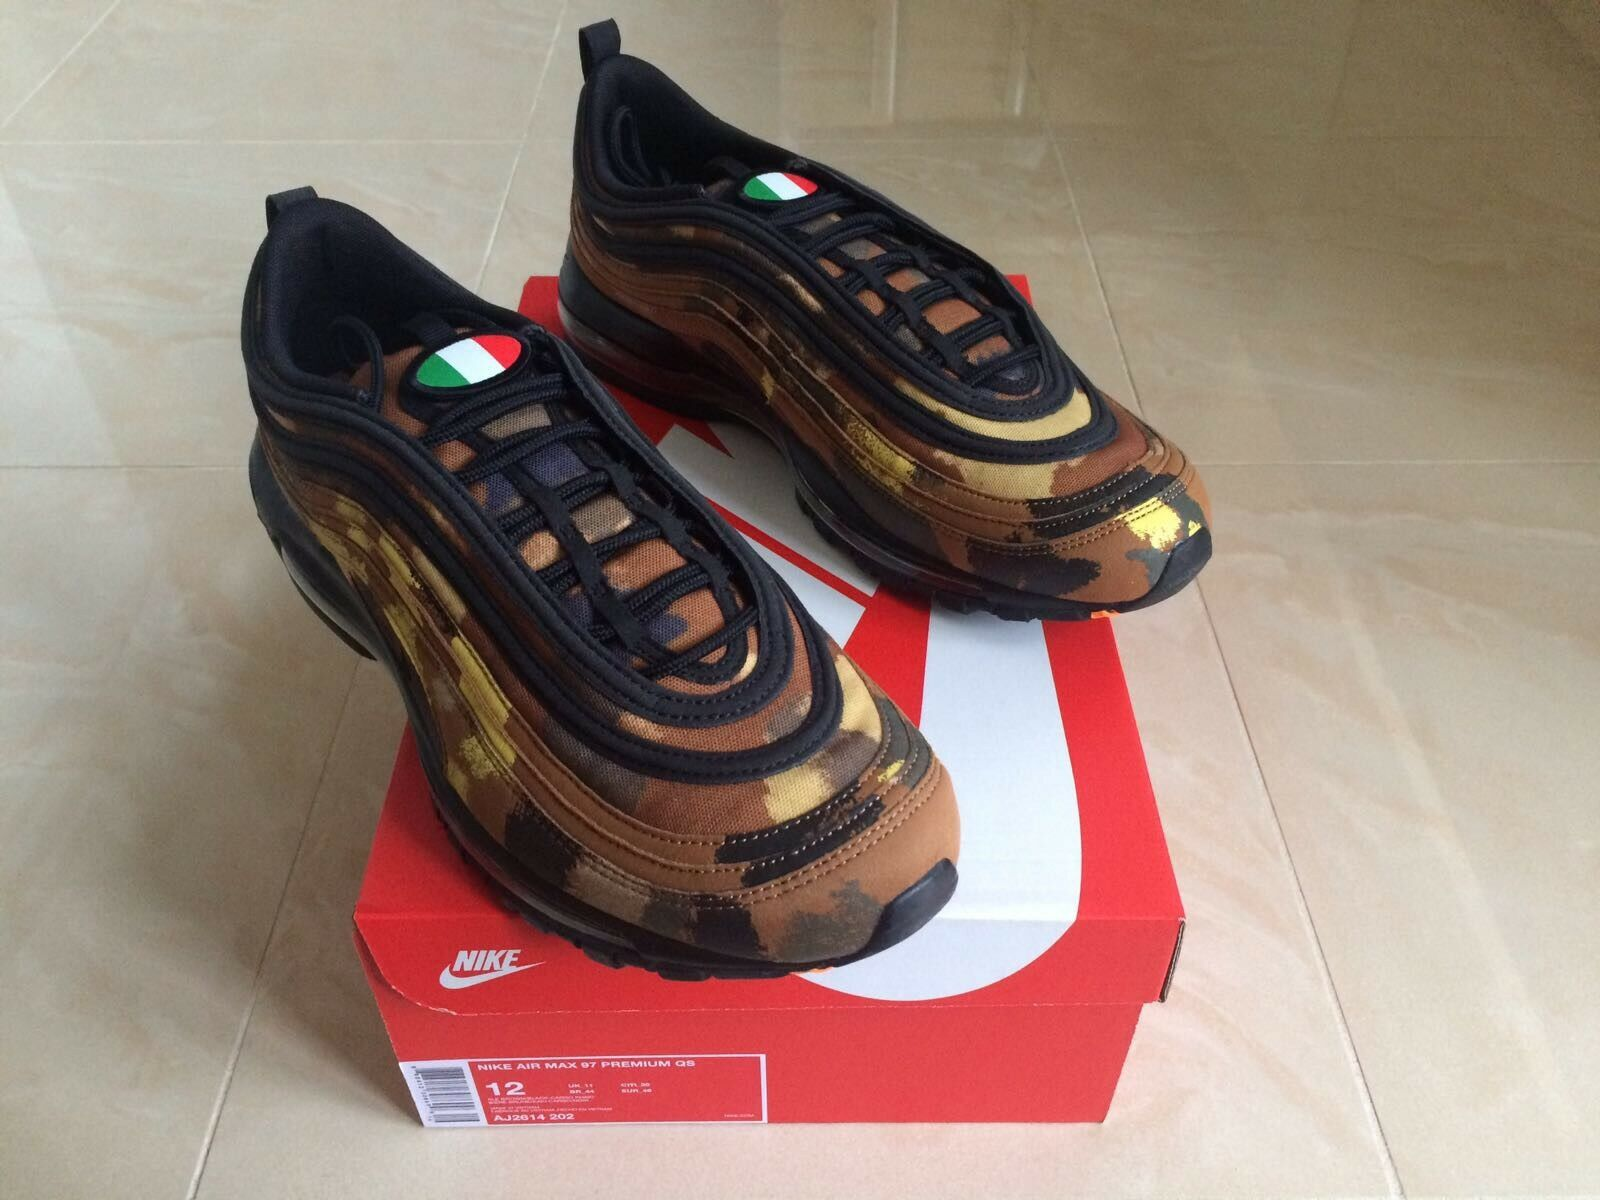 2018 NIKE AIR MAX 97 PREMIUM COUNTRY CAMO ITALY Taille7 & 11 NEW